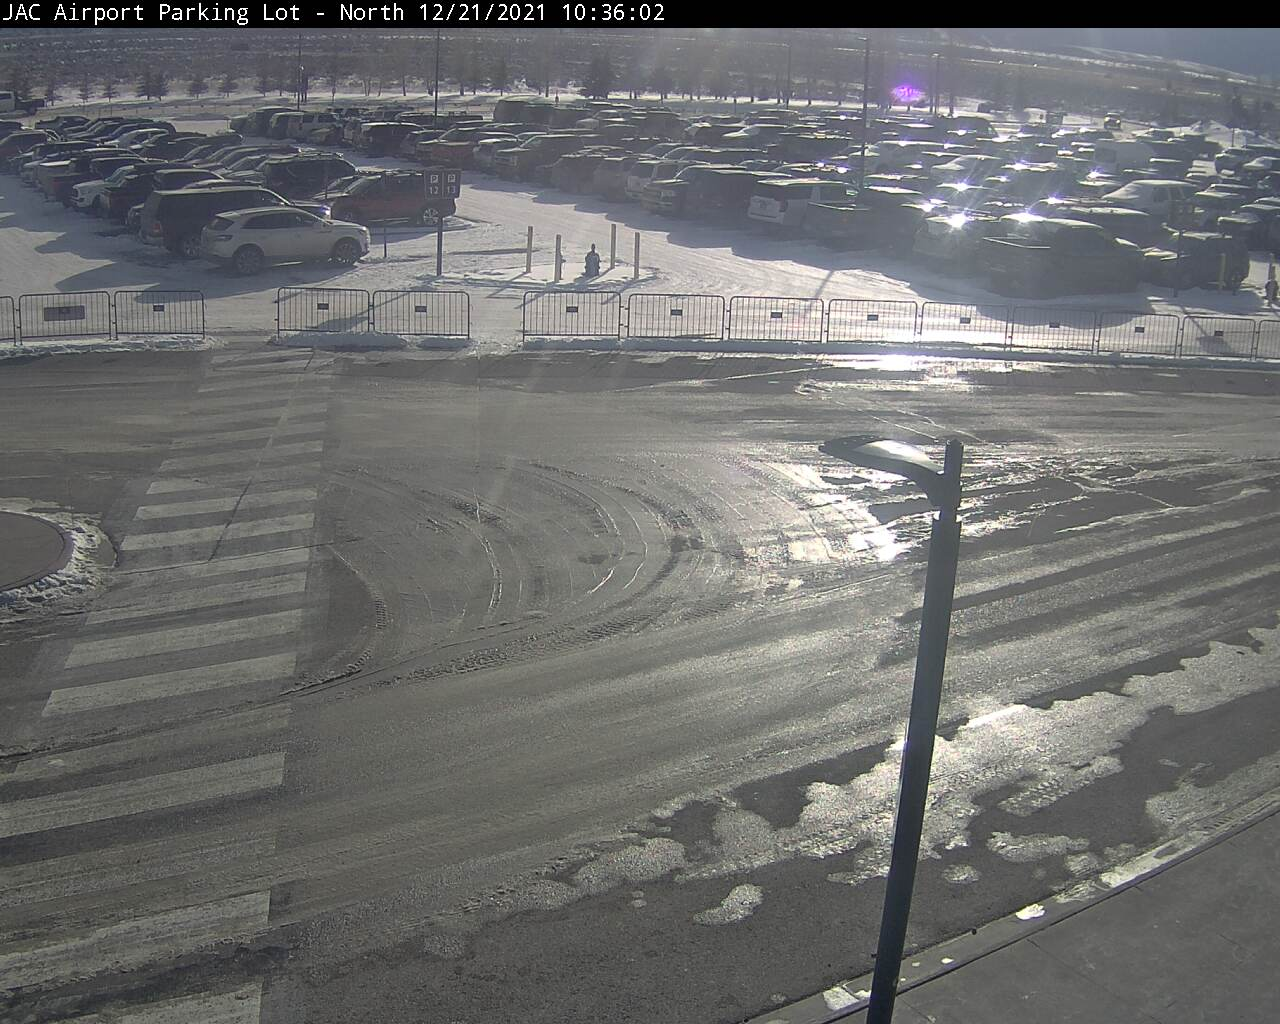 Jackson Hole Airport Webcam - North Parking Lot